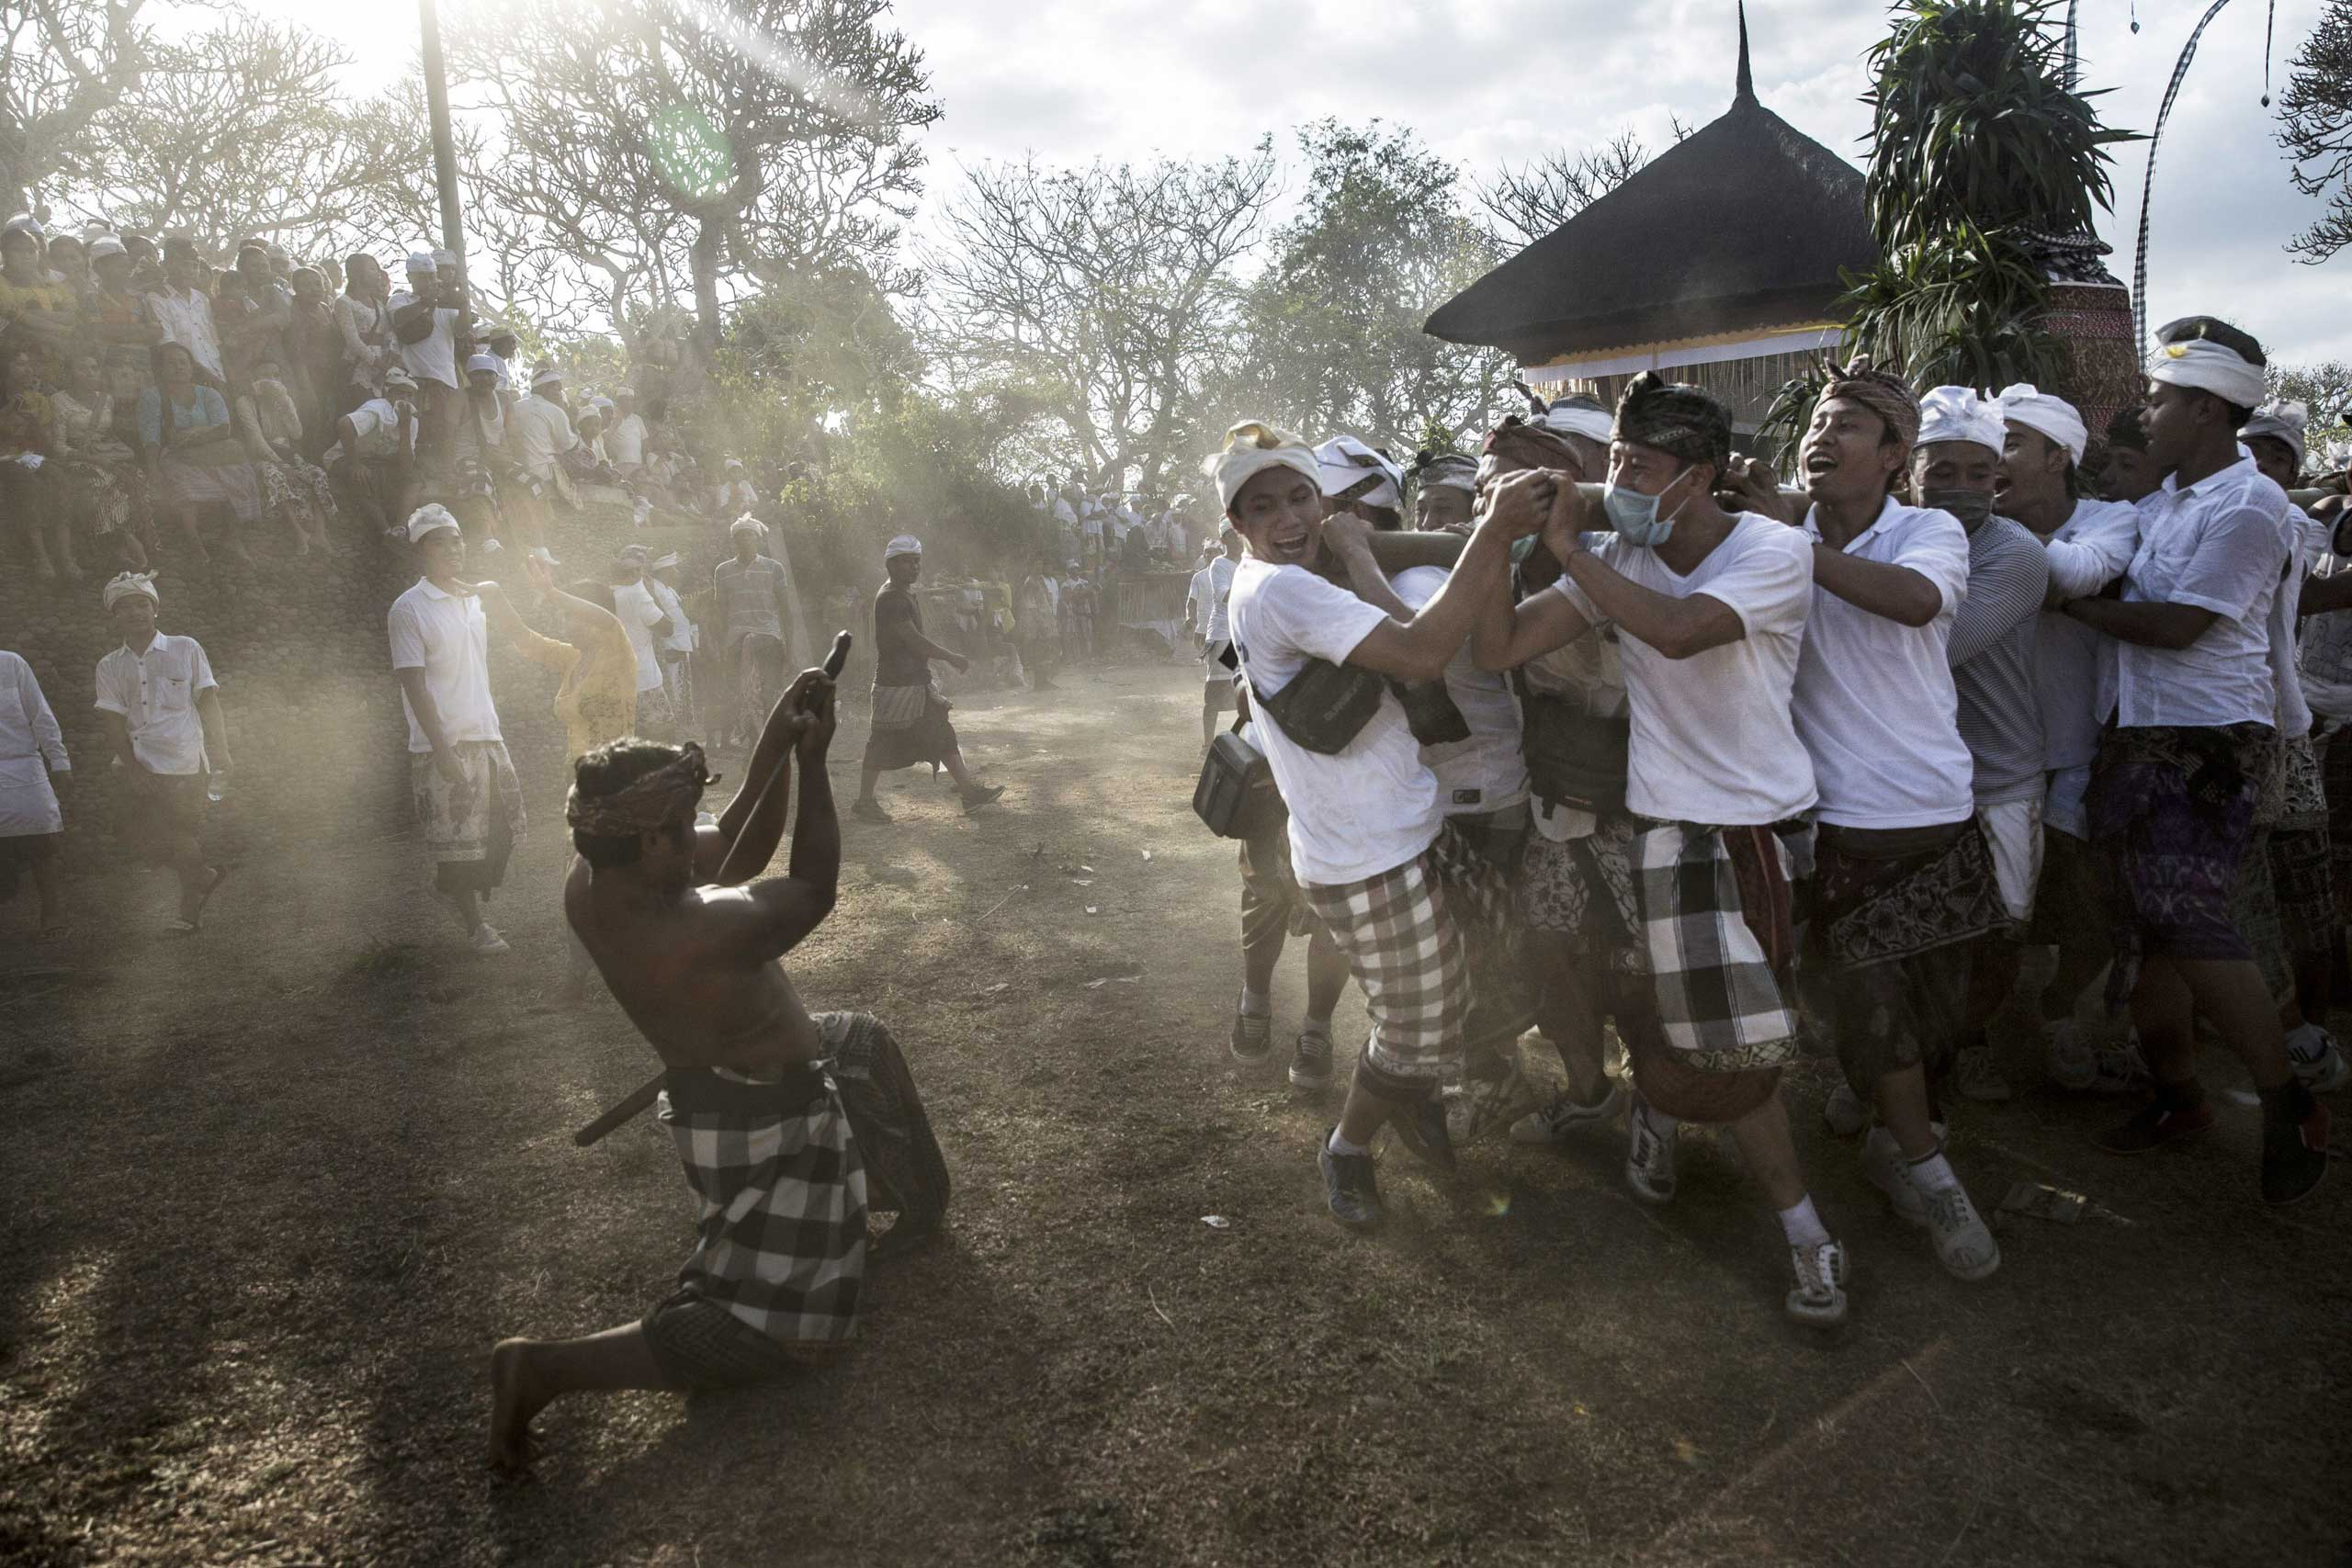 Oct. 6, 2014. A Balinese man in a state of trance, stabs his chest in front of a palanquin, the symbol of god, during Ngusaba Gumang Ritual in Karangasem, Bali, Indonesia.